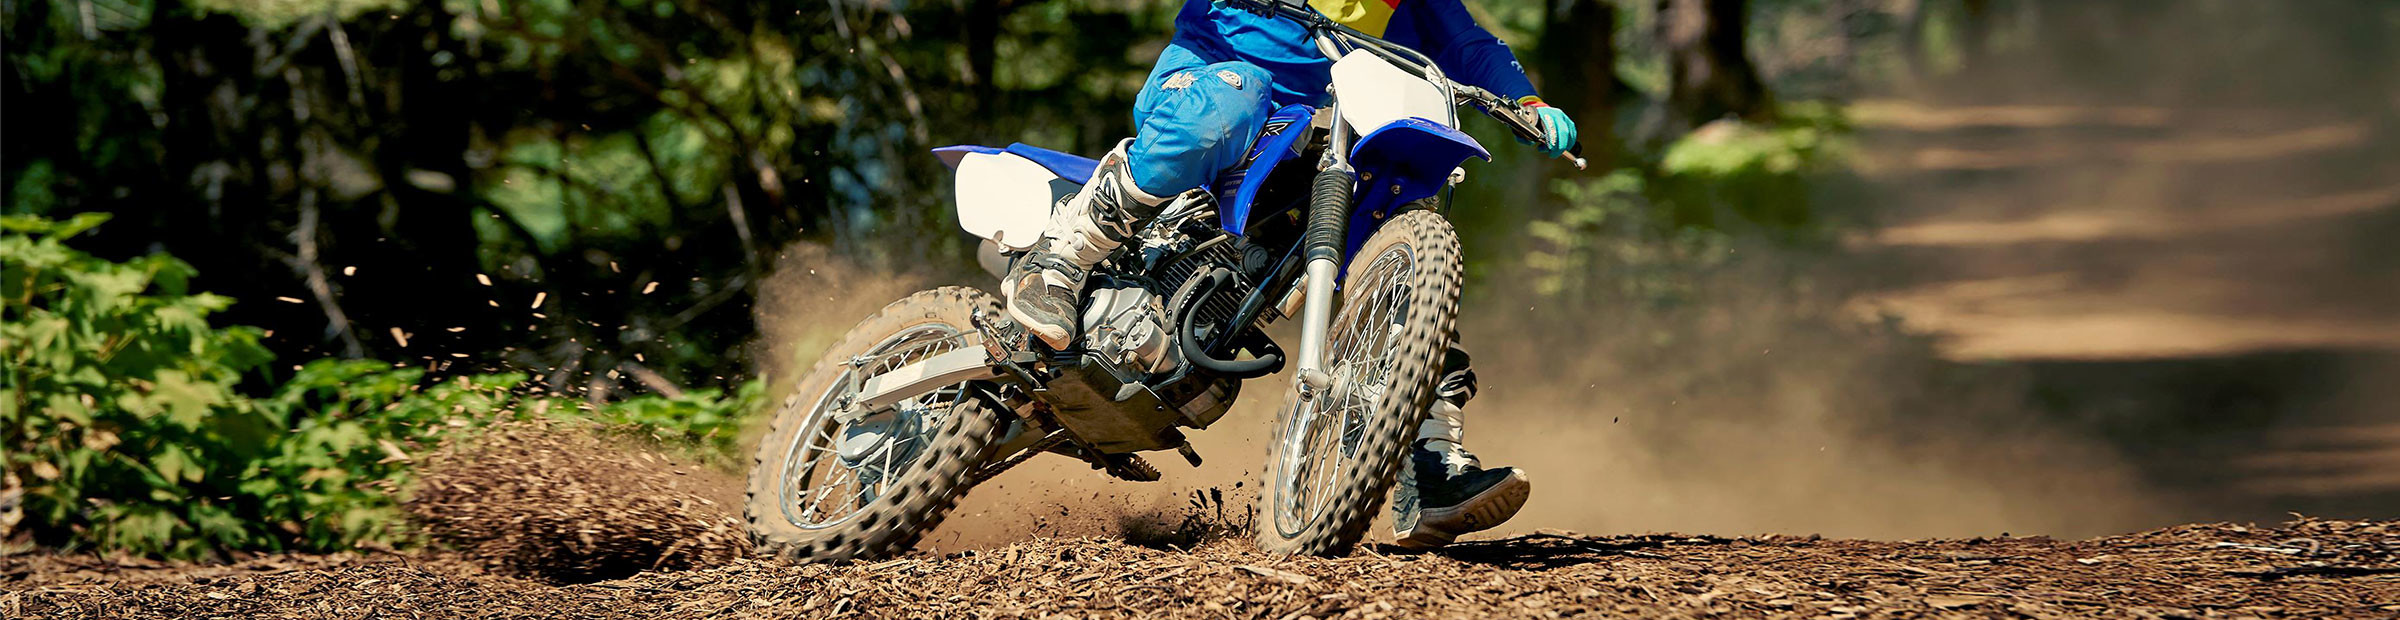 Motorcycle Ownership Courses at Wild West Motorsports